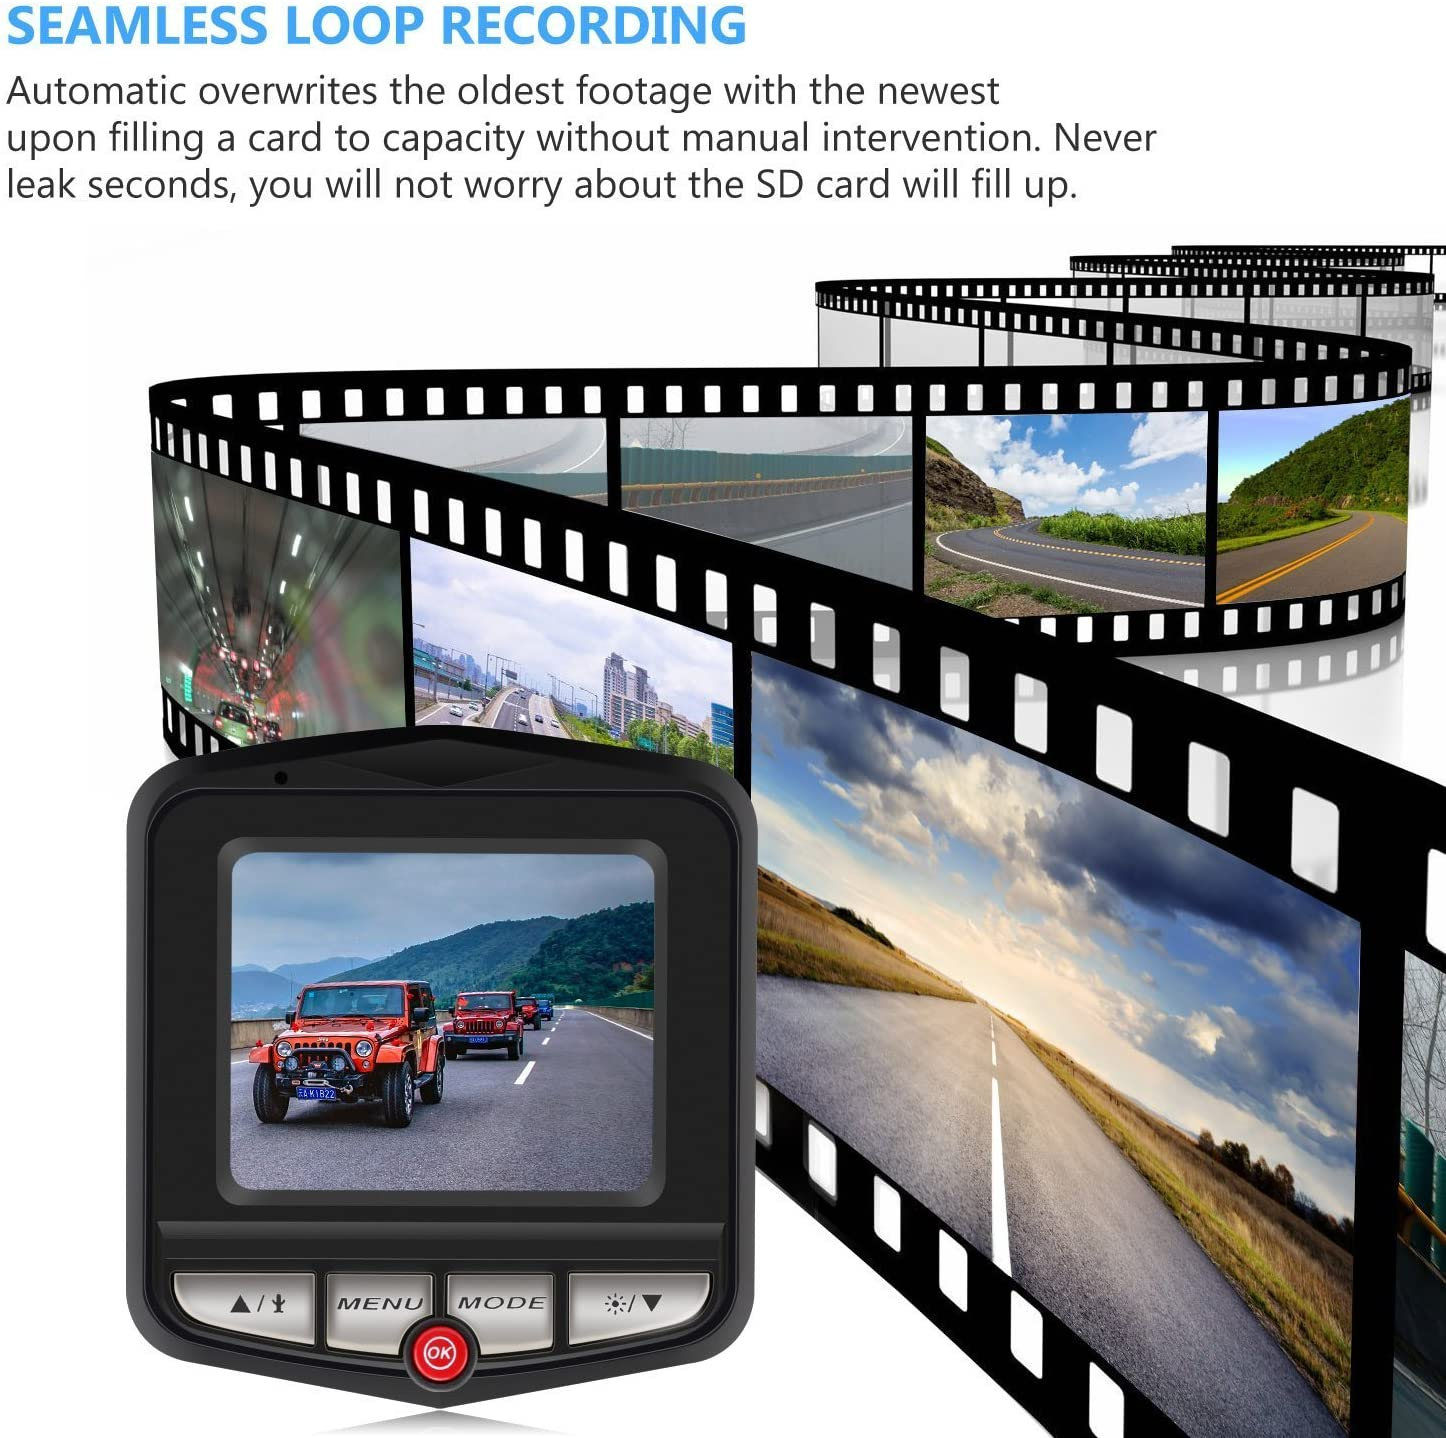 Loop Recording coolsun 2.4 LCD FHD 1080p 160 Degree Wide Angle Dashboard Car Camera Recorder with Night Vision,WDR Car Dash Cam